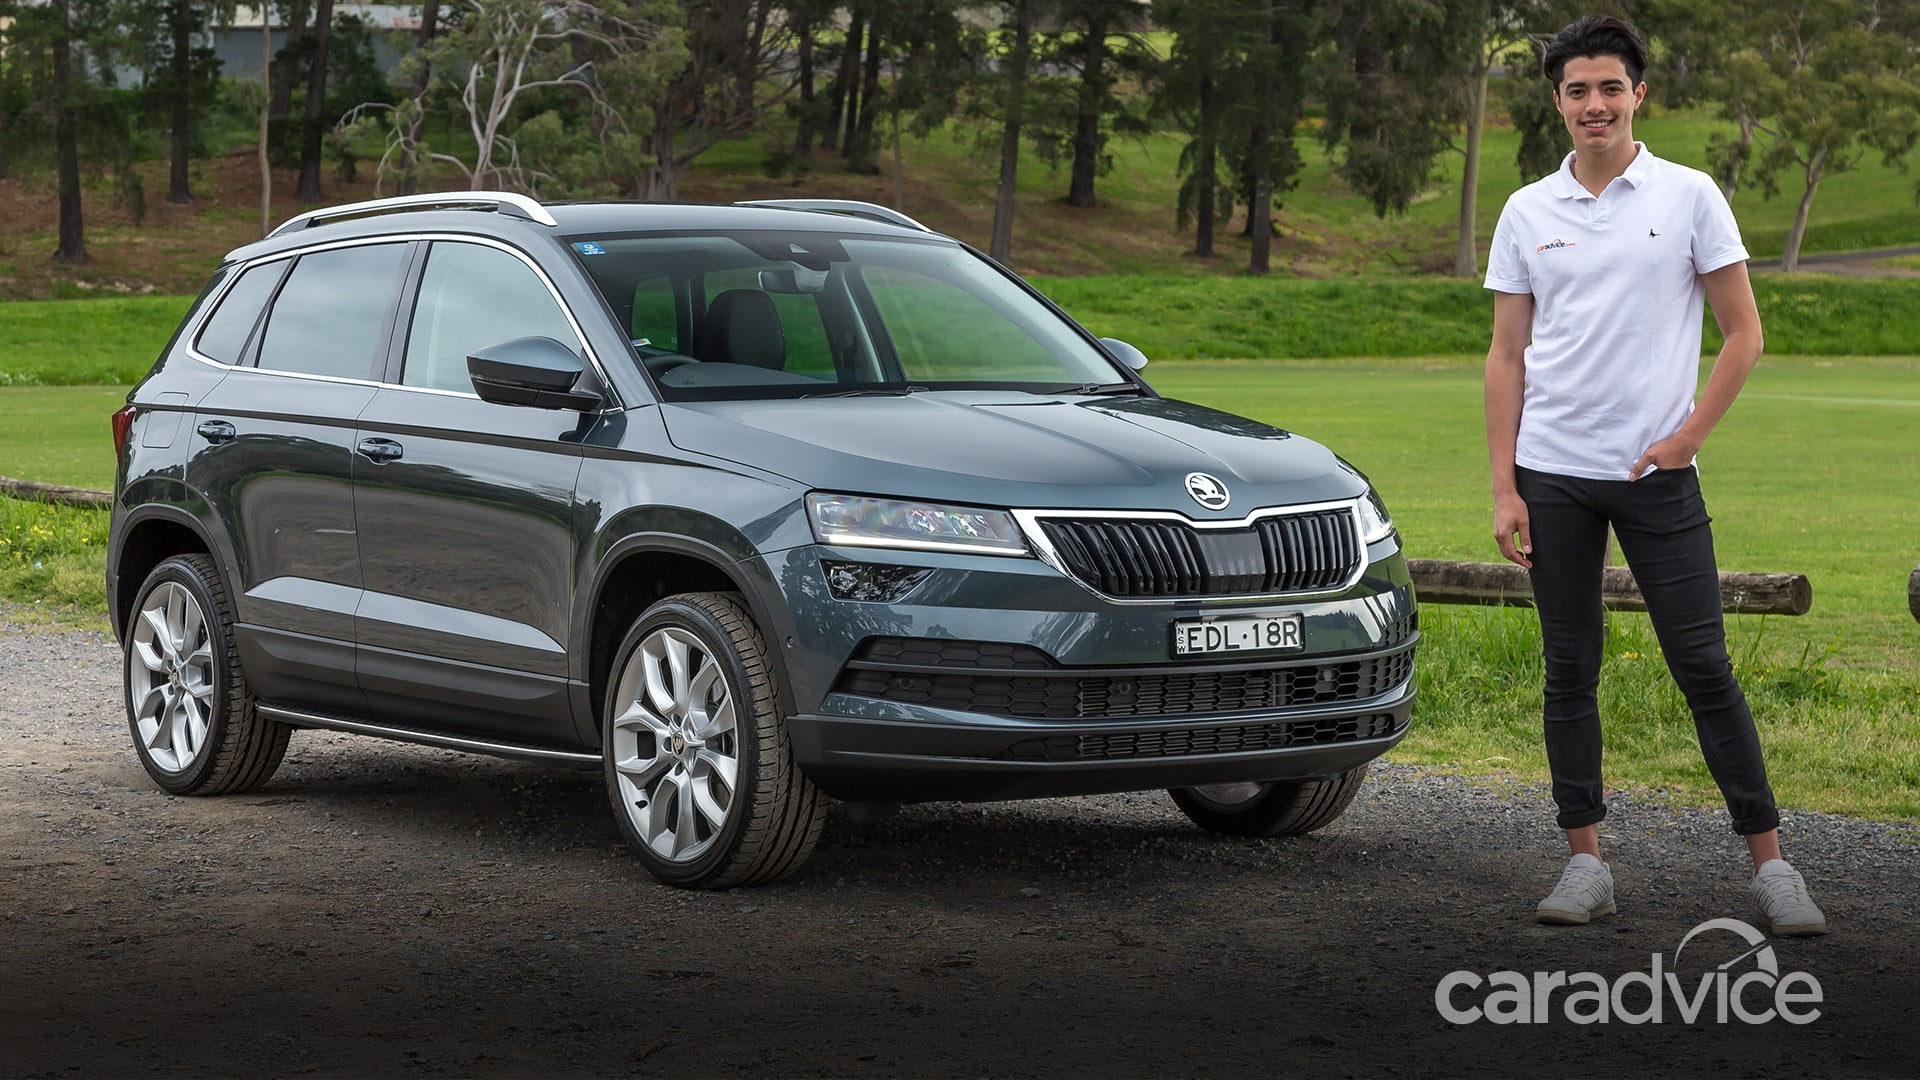 skoda snowman  preview of new sevenseat suv  caradvice